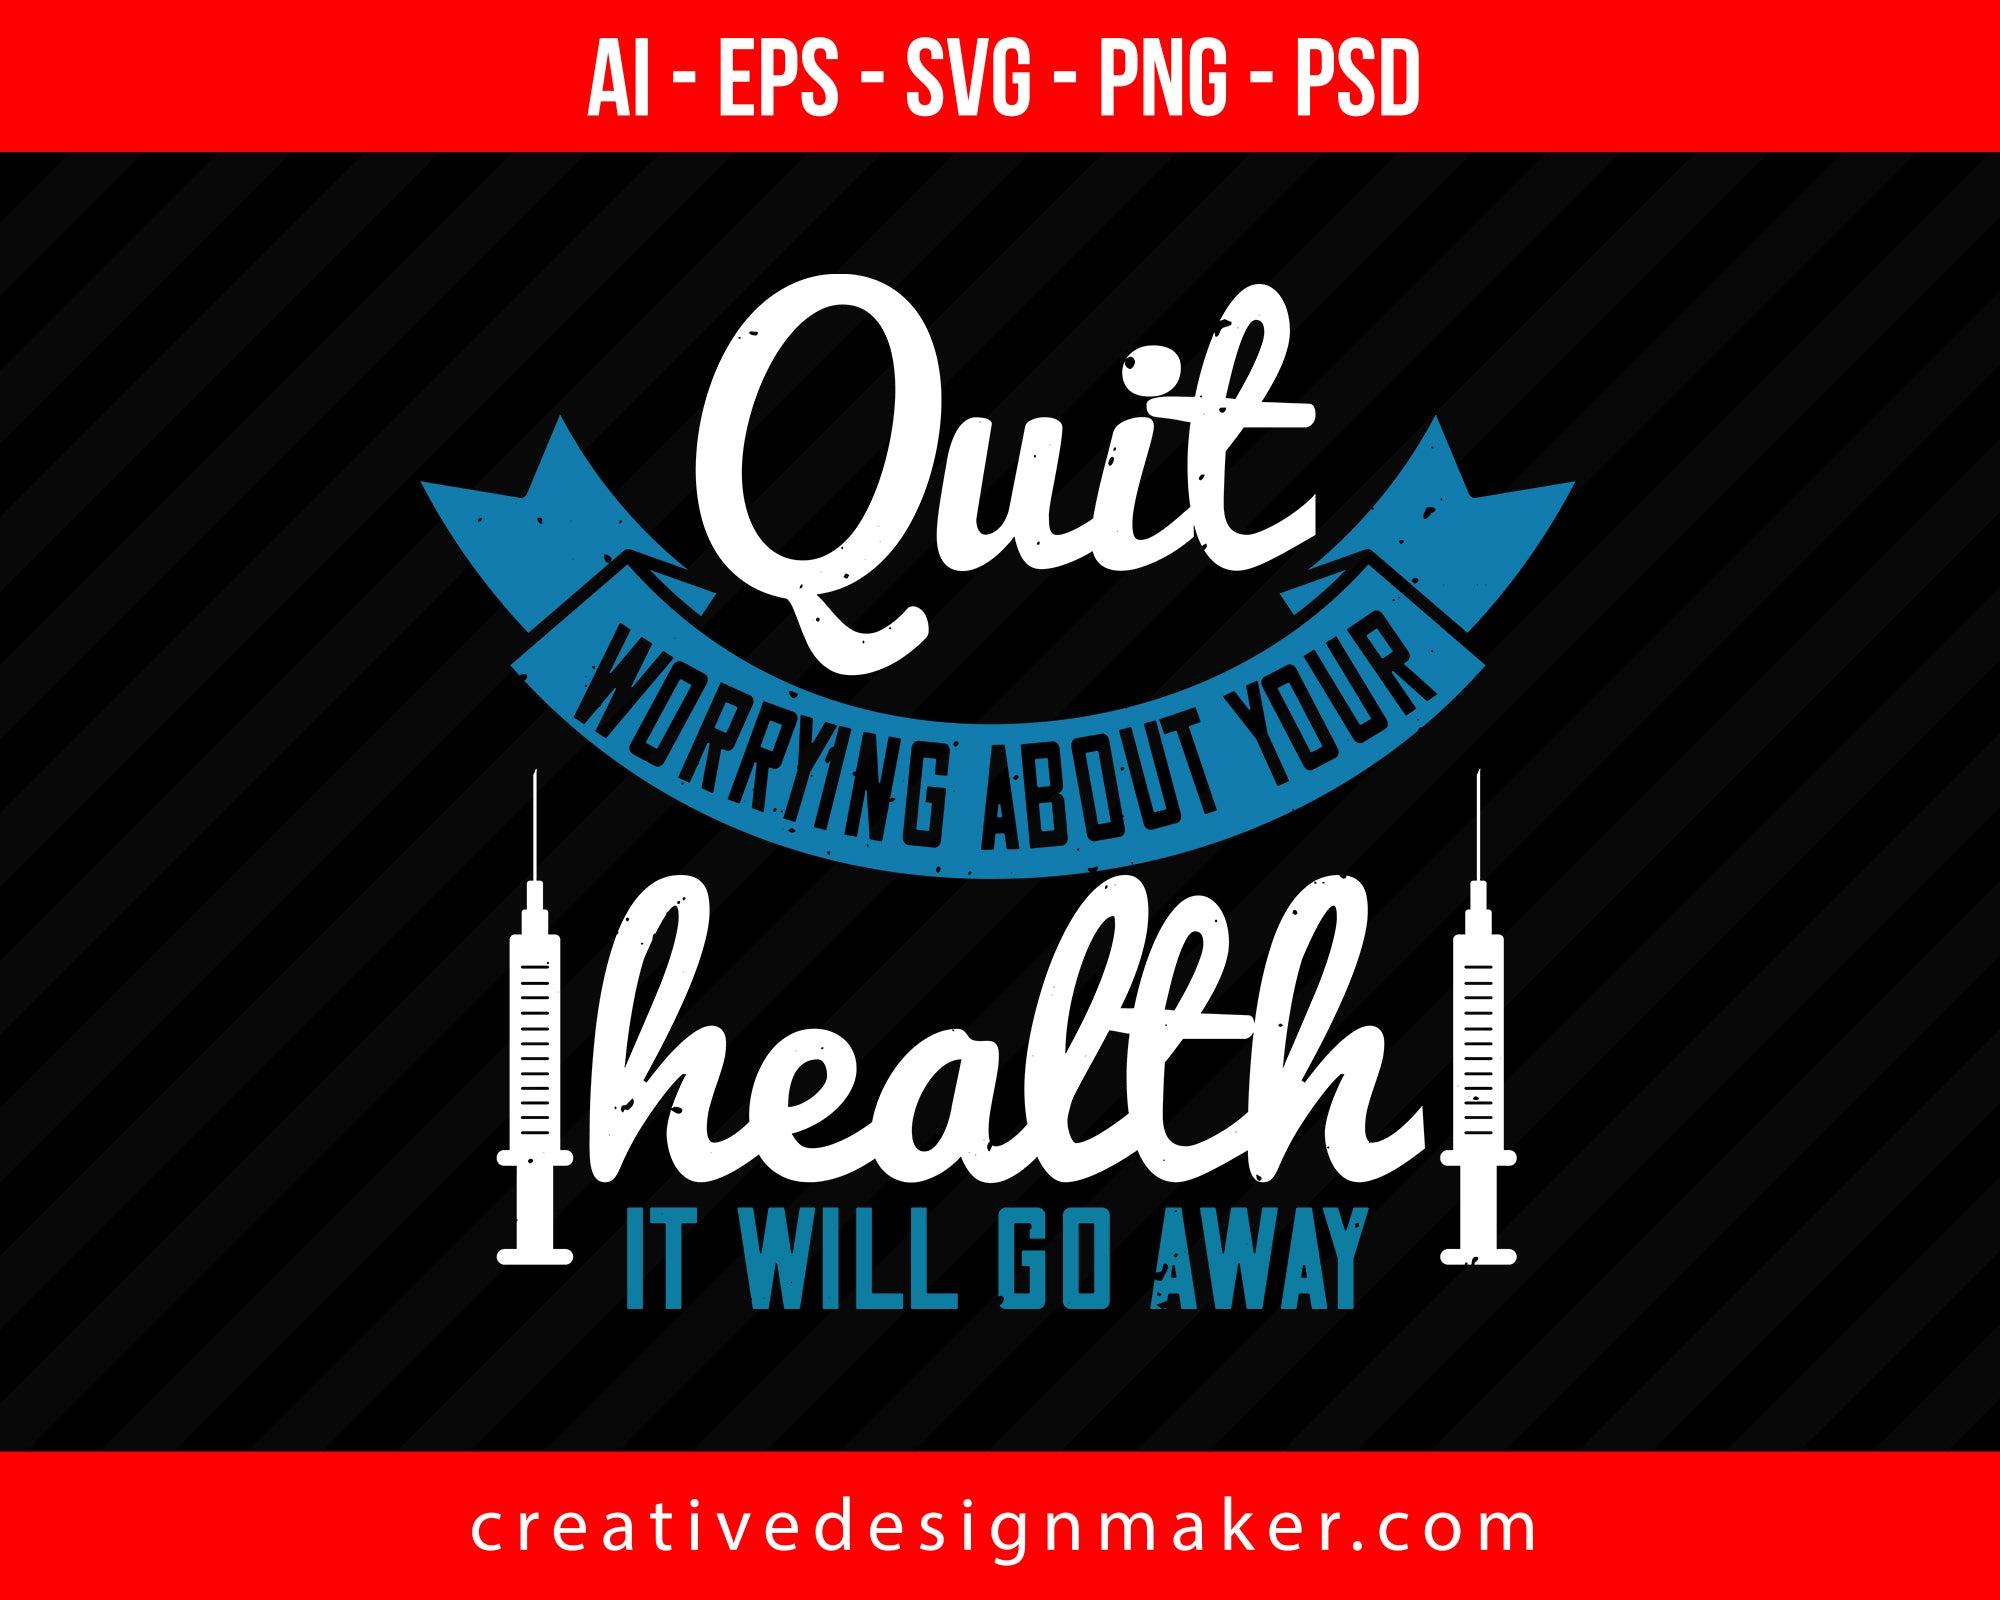 Quit Worrying About Your Health. It Will Go Away World Health Print Ready Editable T-Shirt SVG Design!